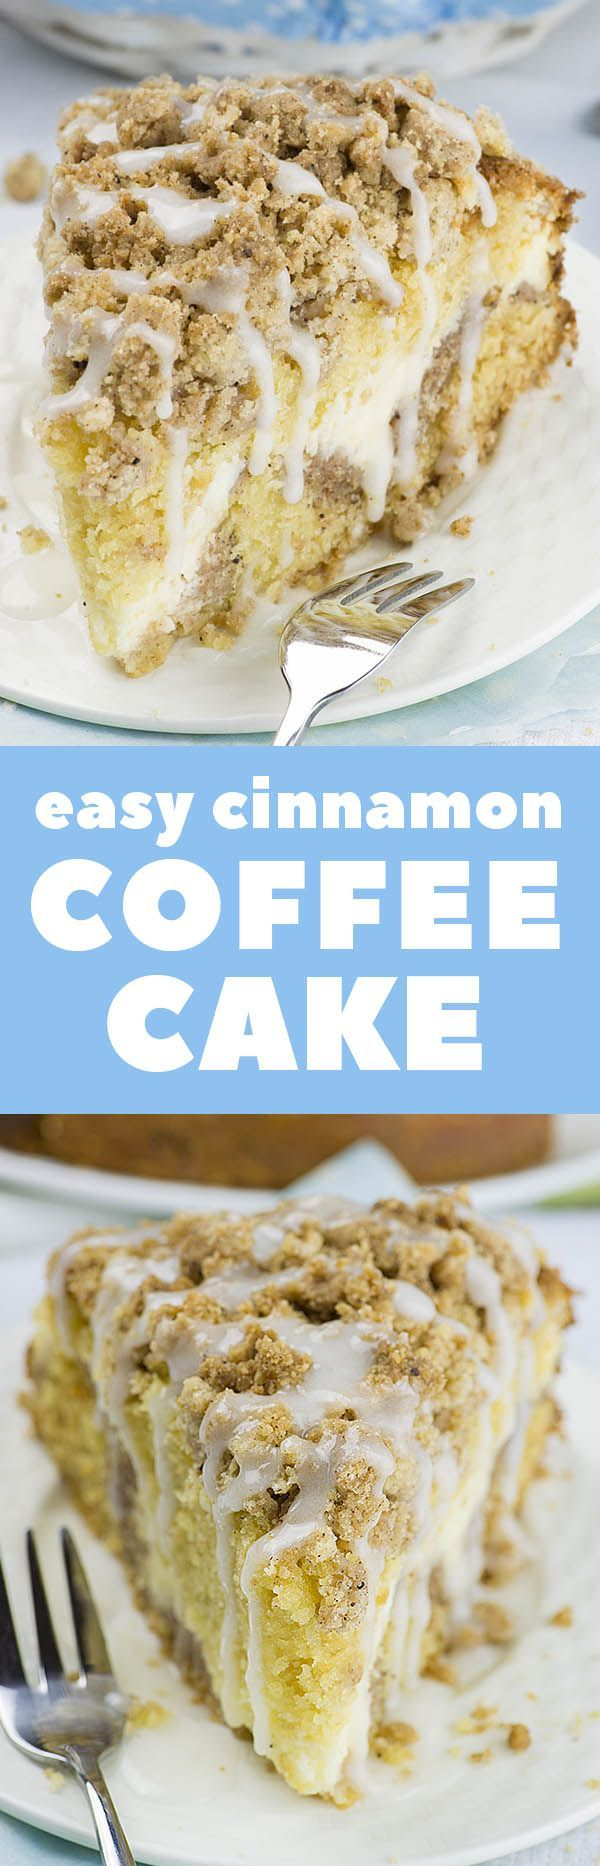 Easy Cinnamon Coffee Cake is simple and quick recipe for delicious, homemade coffee cake from scratch. Dessert or breakfast idea - it's your choice!